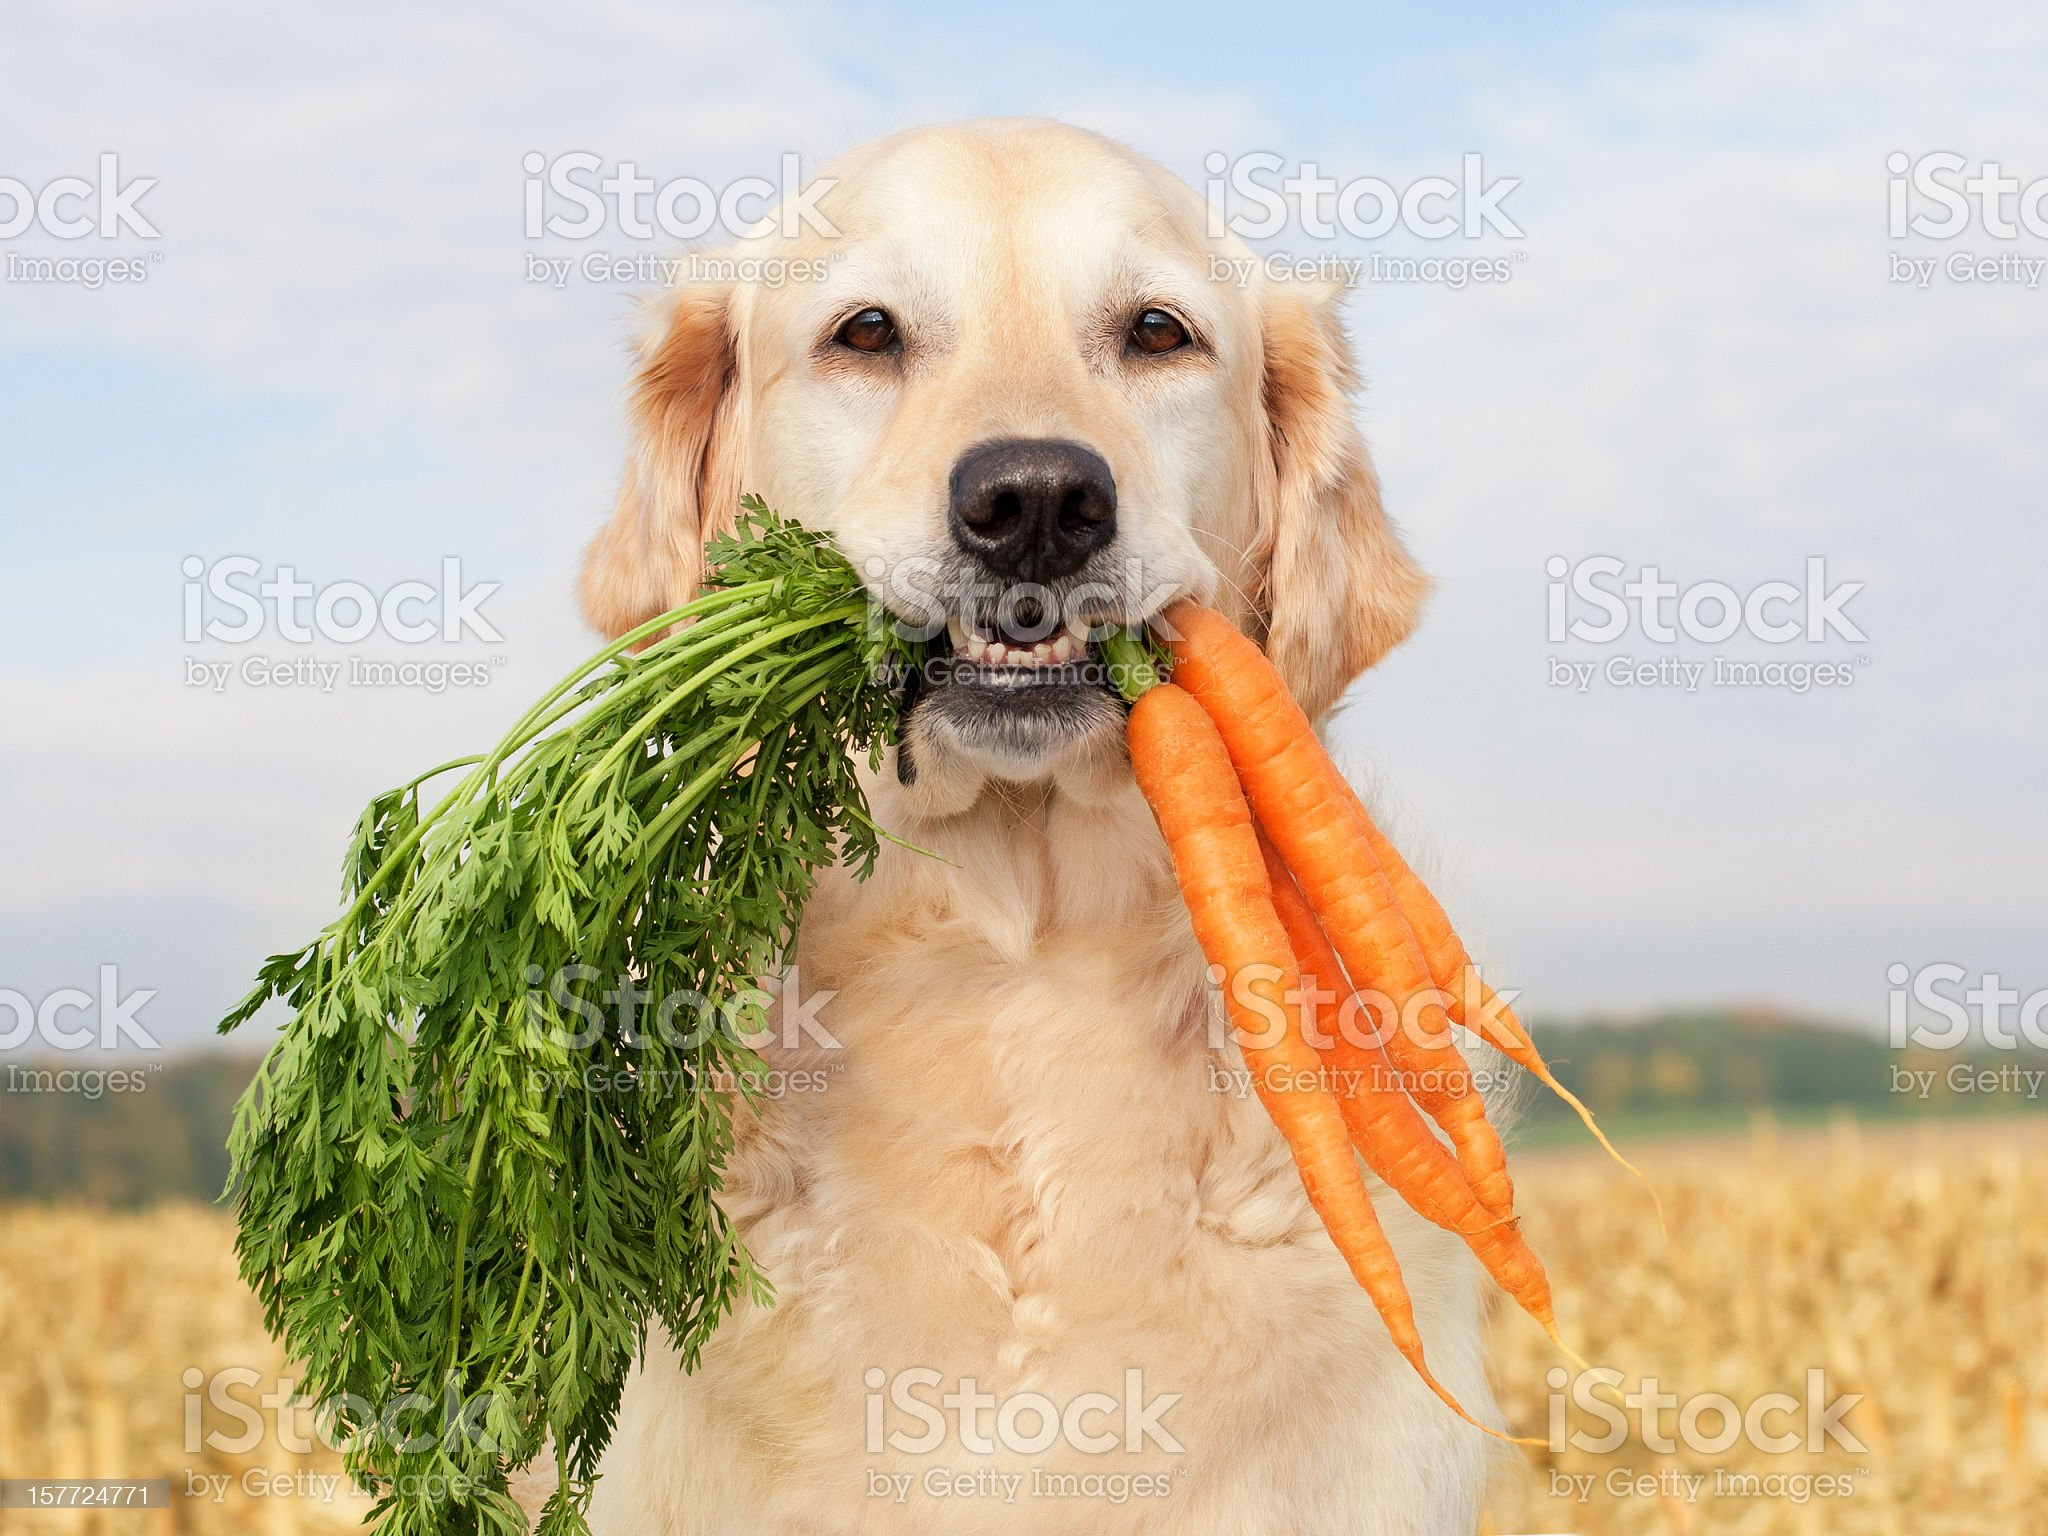 Dog with vegetables royalty-free stock photo